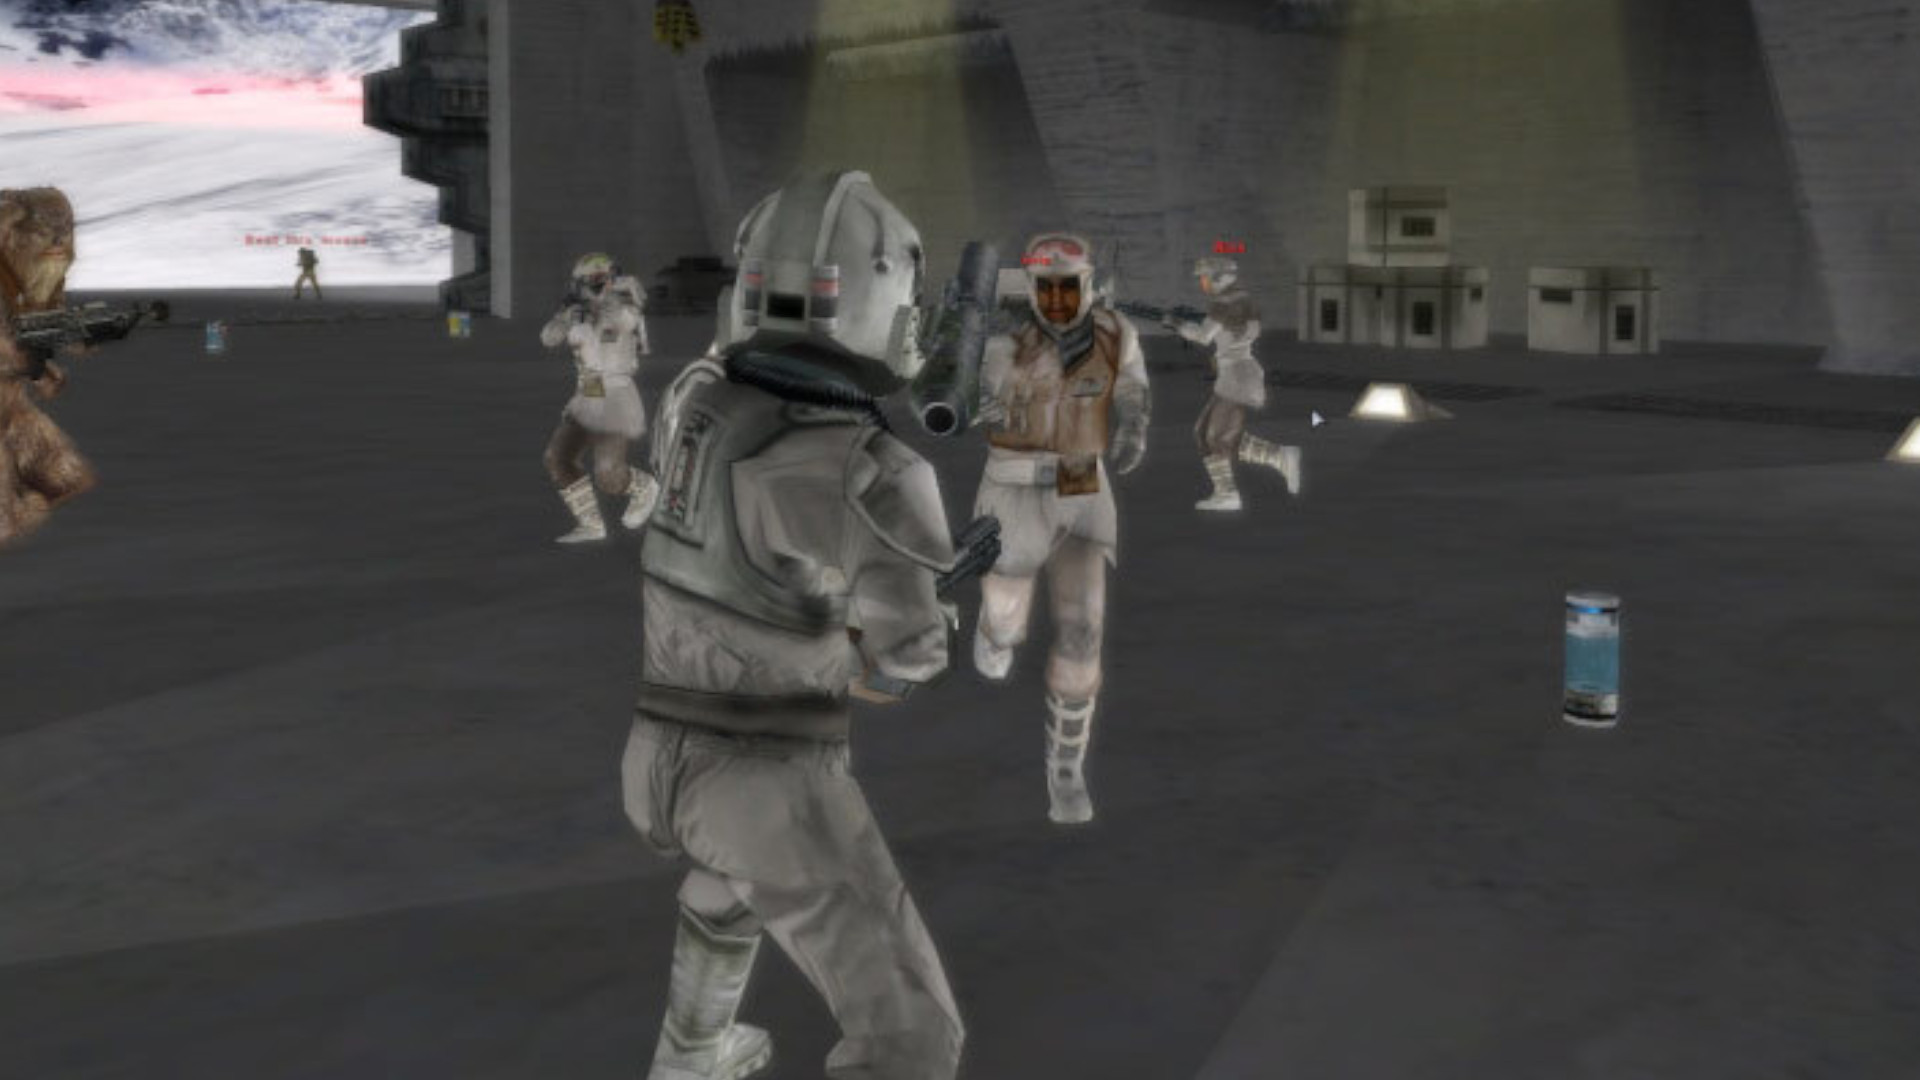 Star Wars Battlefront 2 The Original Gets First Patch In Three Years But It S Already Reverted Pcgamesn